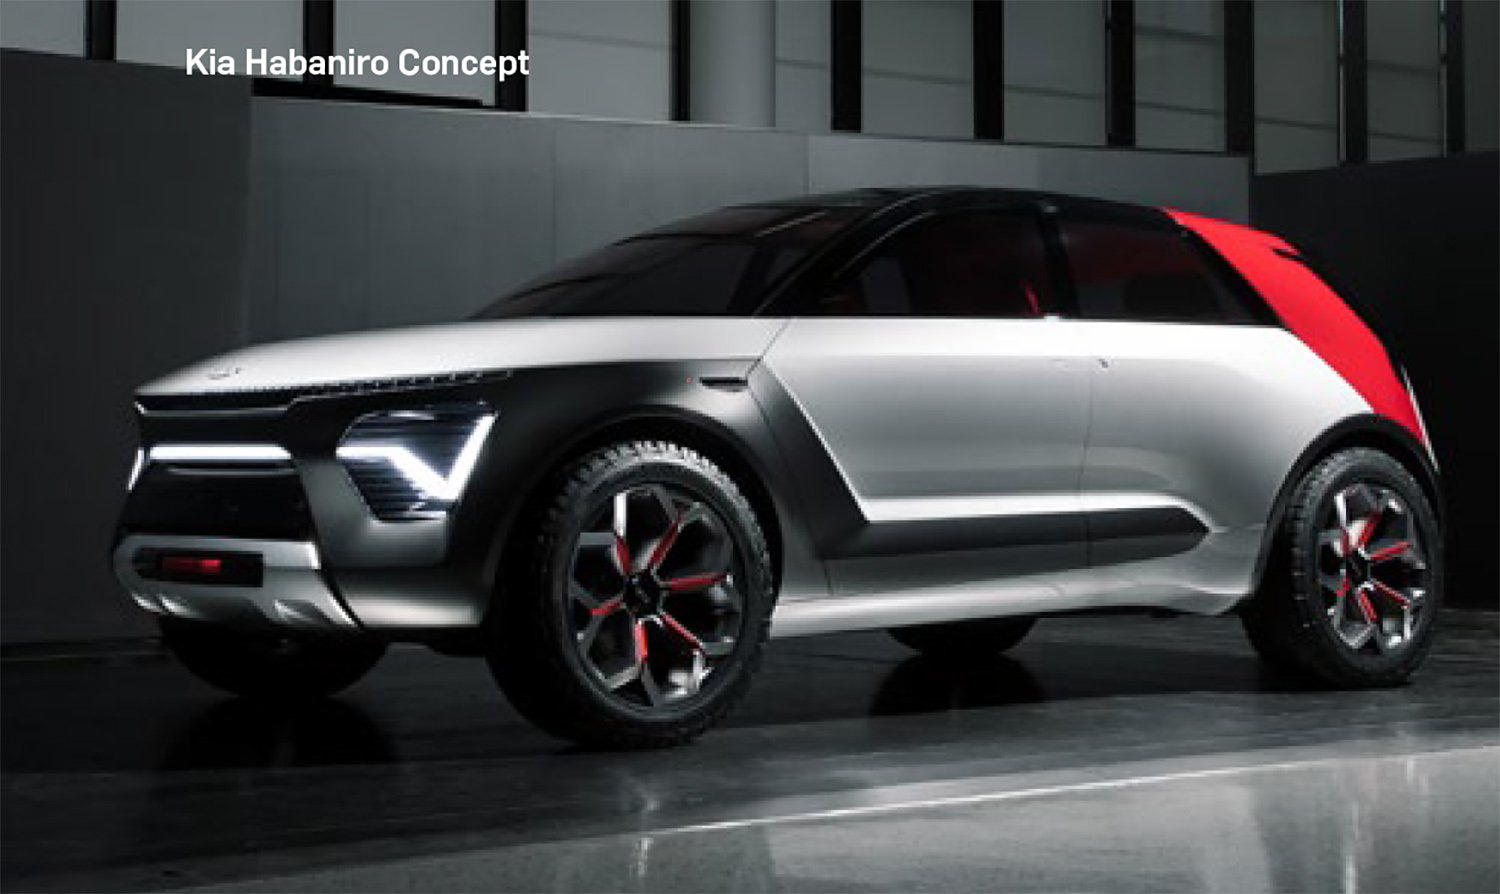 New Kia Habaniro Concept Looks Like One Spicy Crossover Carmojo Kia S New Habaniro Crossover Study Could Hint At A Growing Niro Fami Kia Concept Cars Car